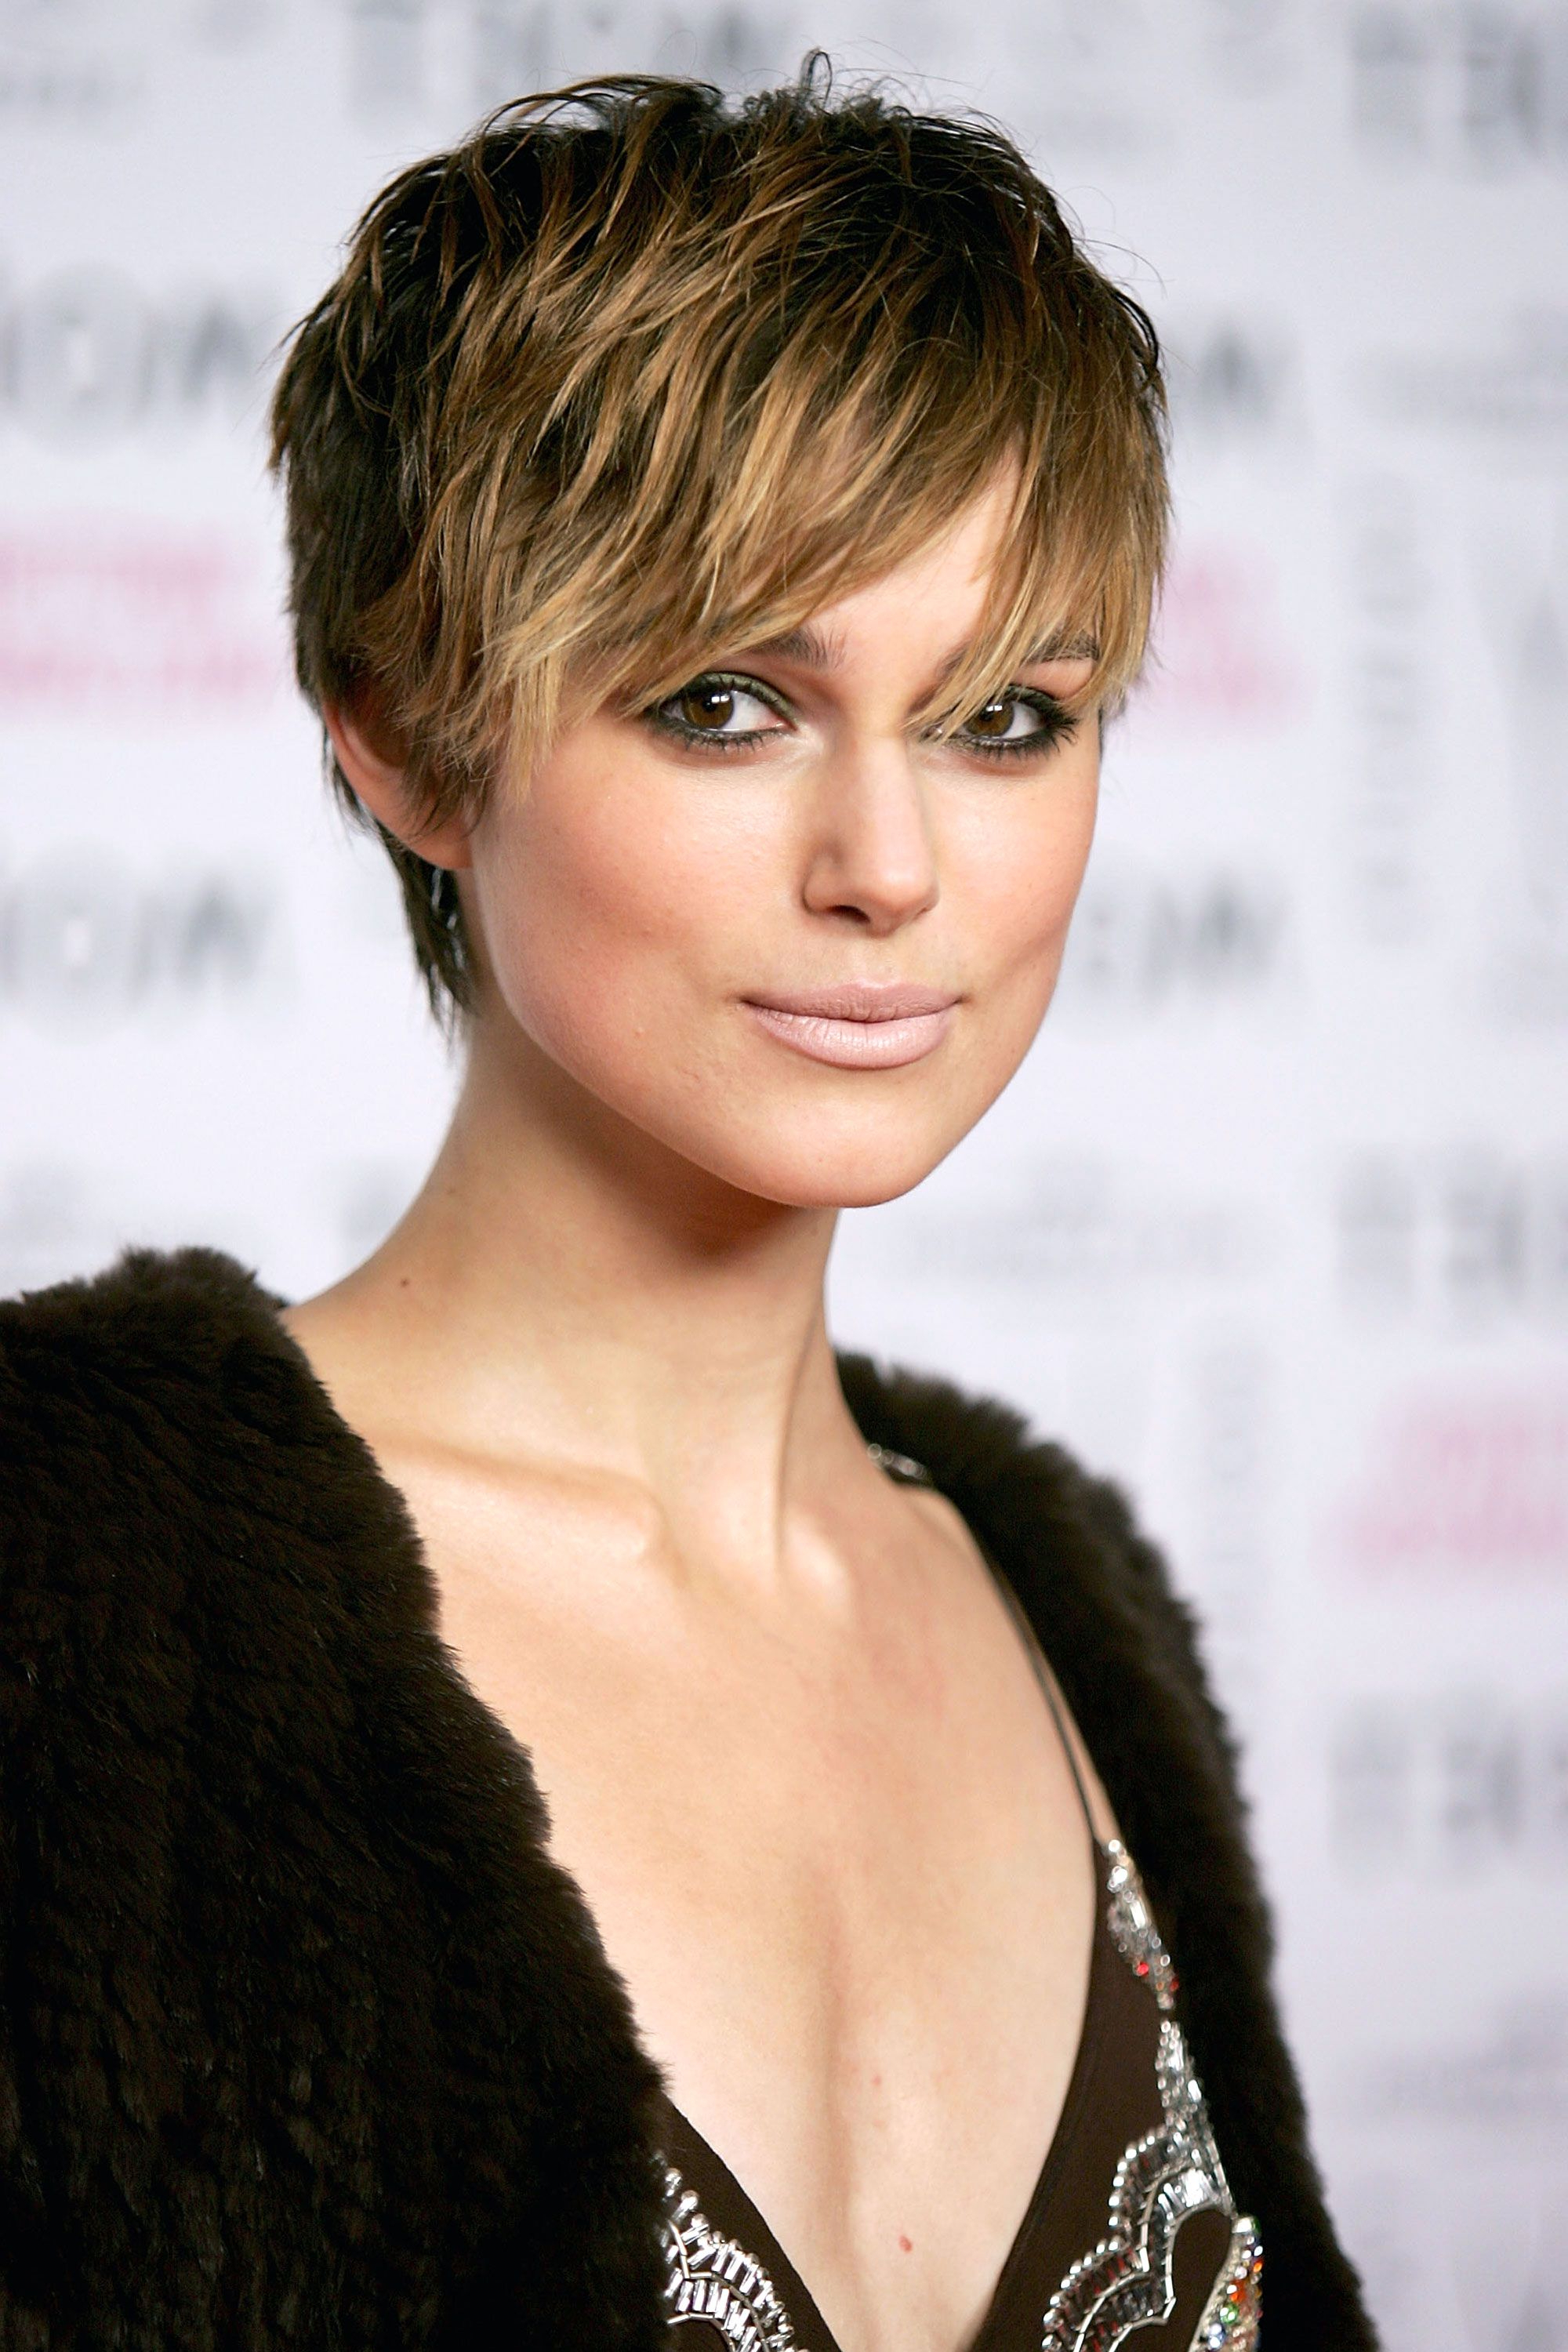 50+ Pixie Cuts We Love For 2018 – Short Pixie Hairstyles From With Regard To Highlighted Pixie Bob Hairstyles With Long Bangs (View 8 of 20)